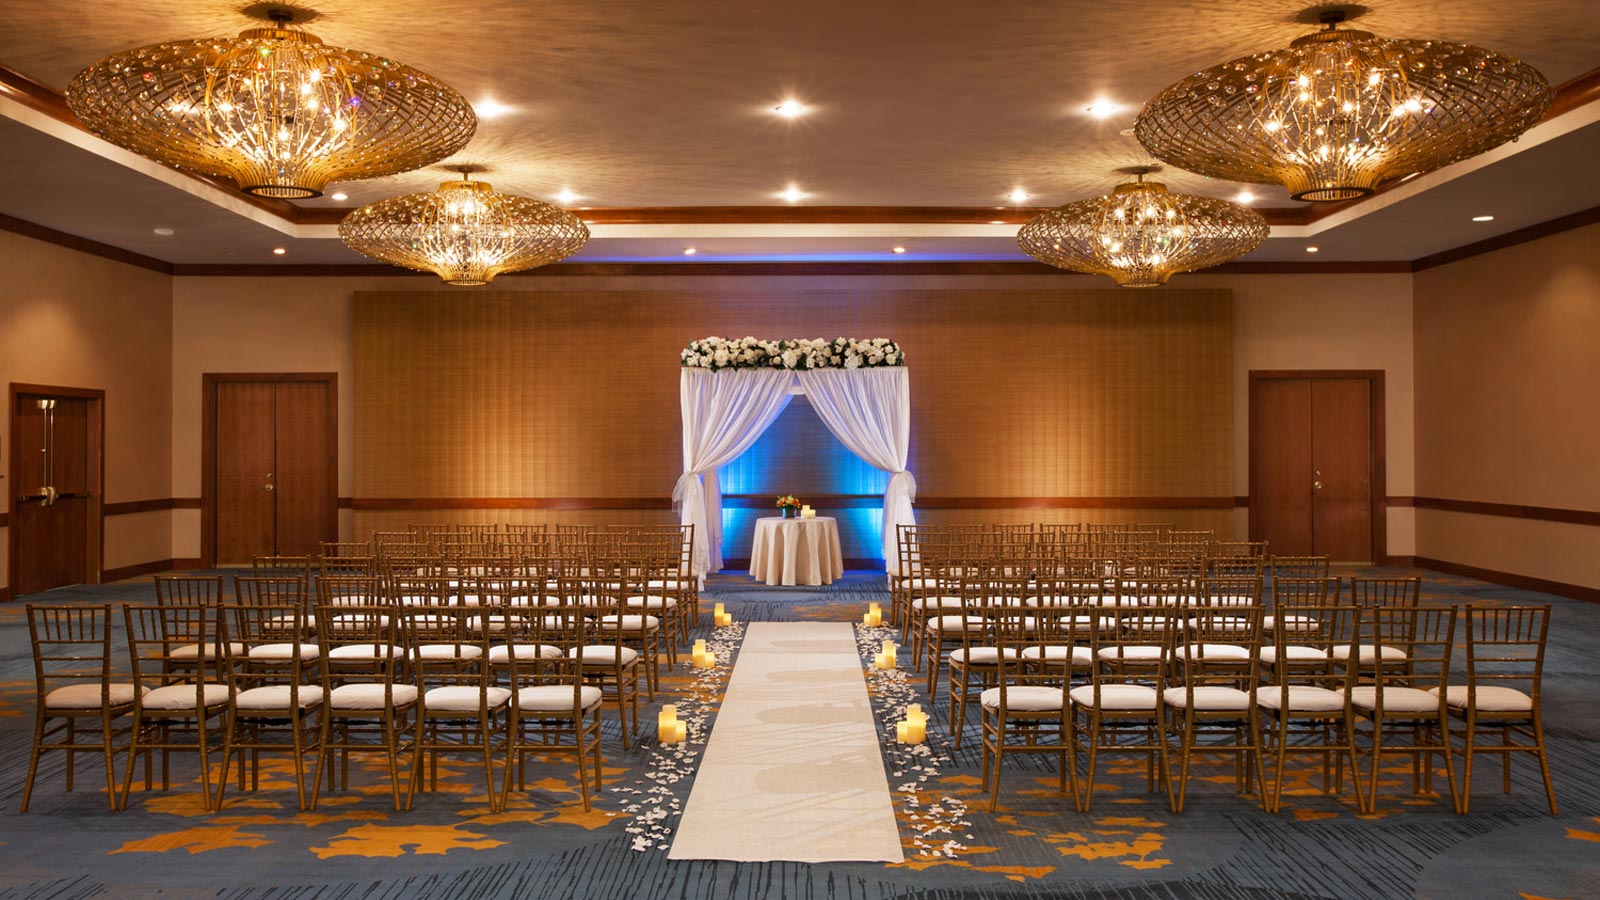 Las vegas wedding venues the westin las vegas hotel spa las vegas wedding venues junglespirit Image collections